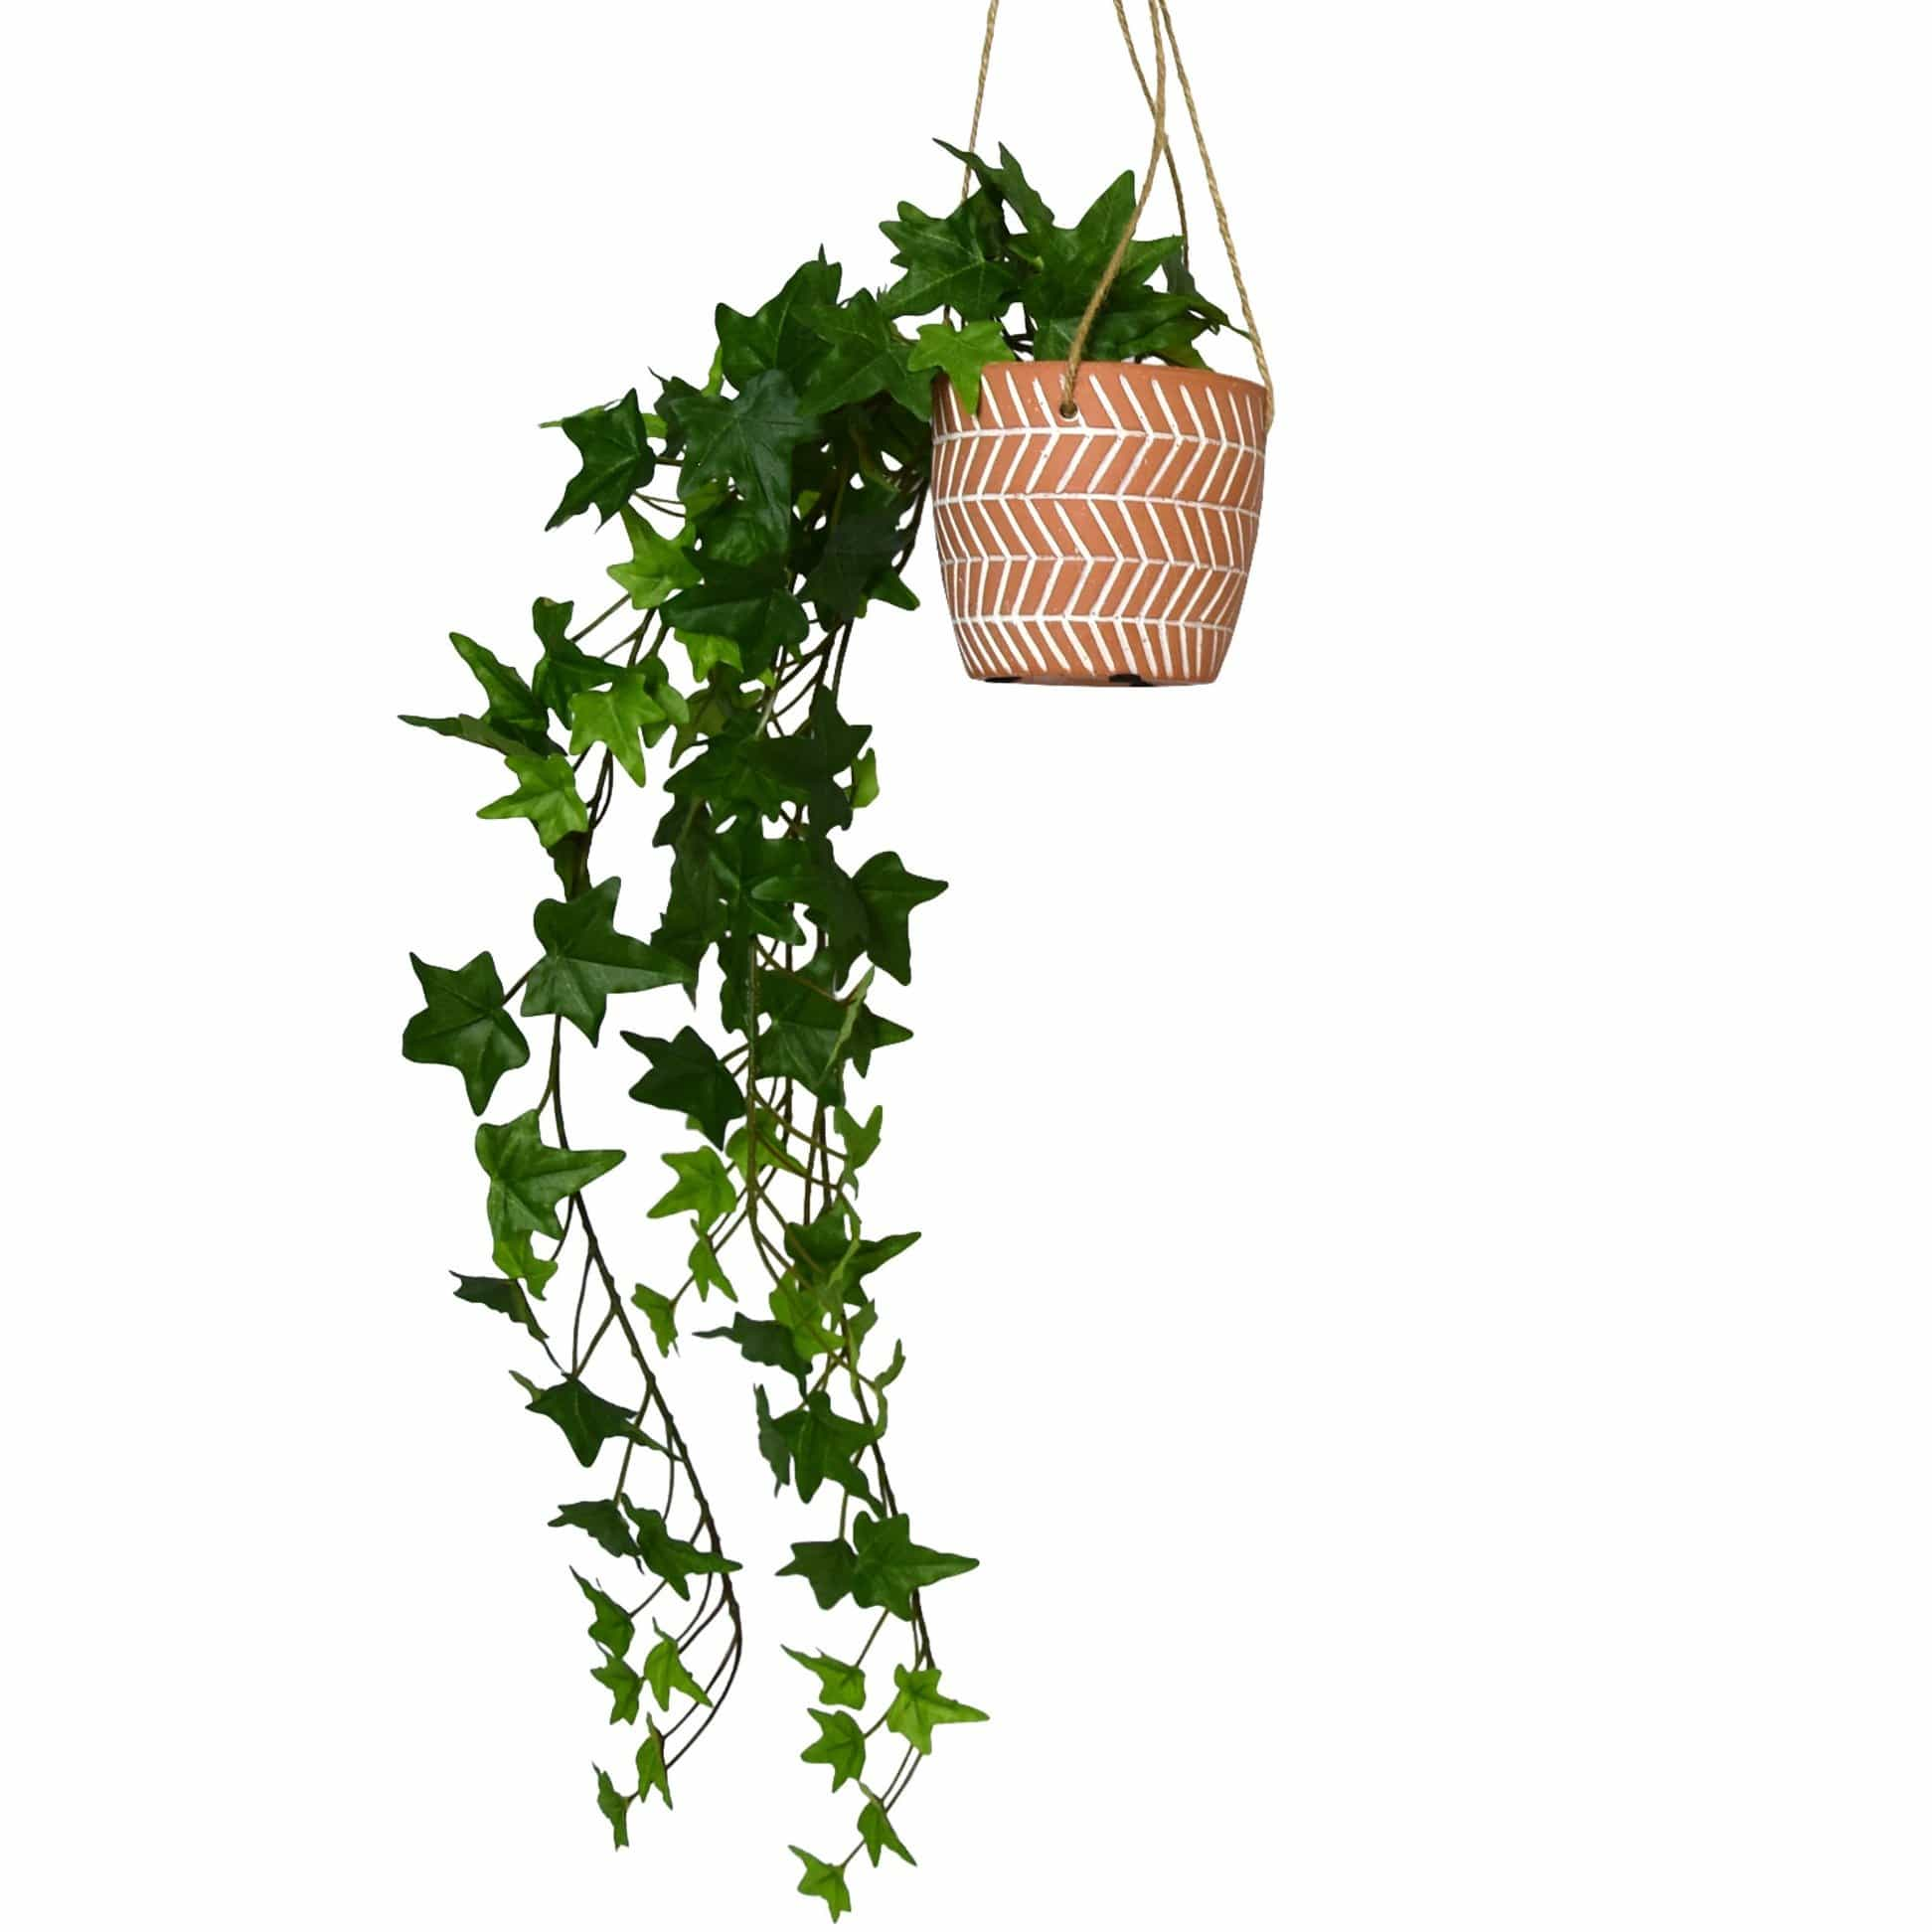 Faux Trailing Ivy in Hanging Ceramic Pot in Gift Box 1PK